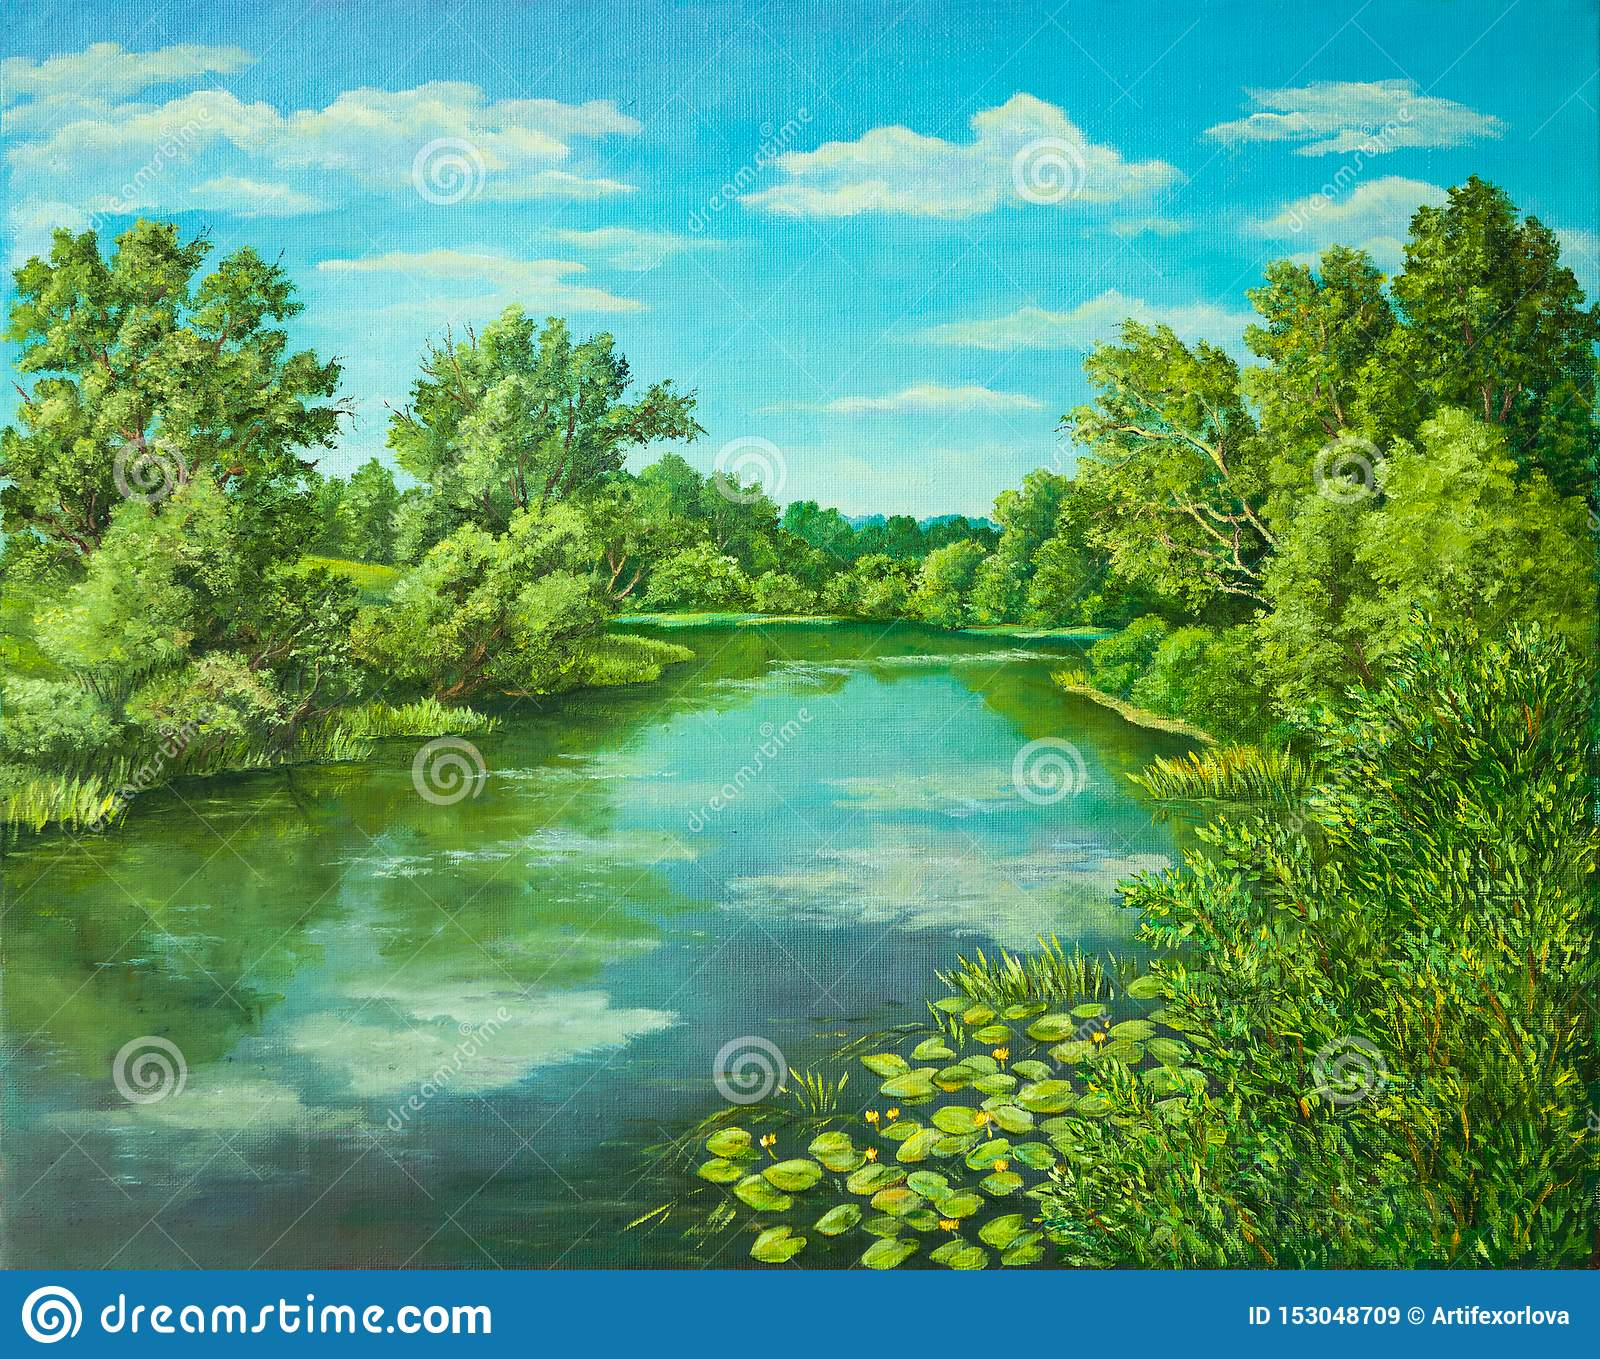 Summer rural landscape in Russia. Sunny day - calm blue summer river with reflection green grass and trees . Original